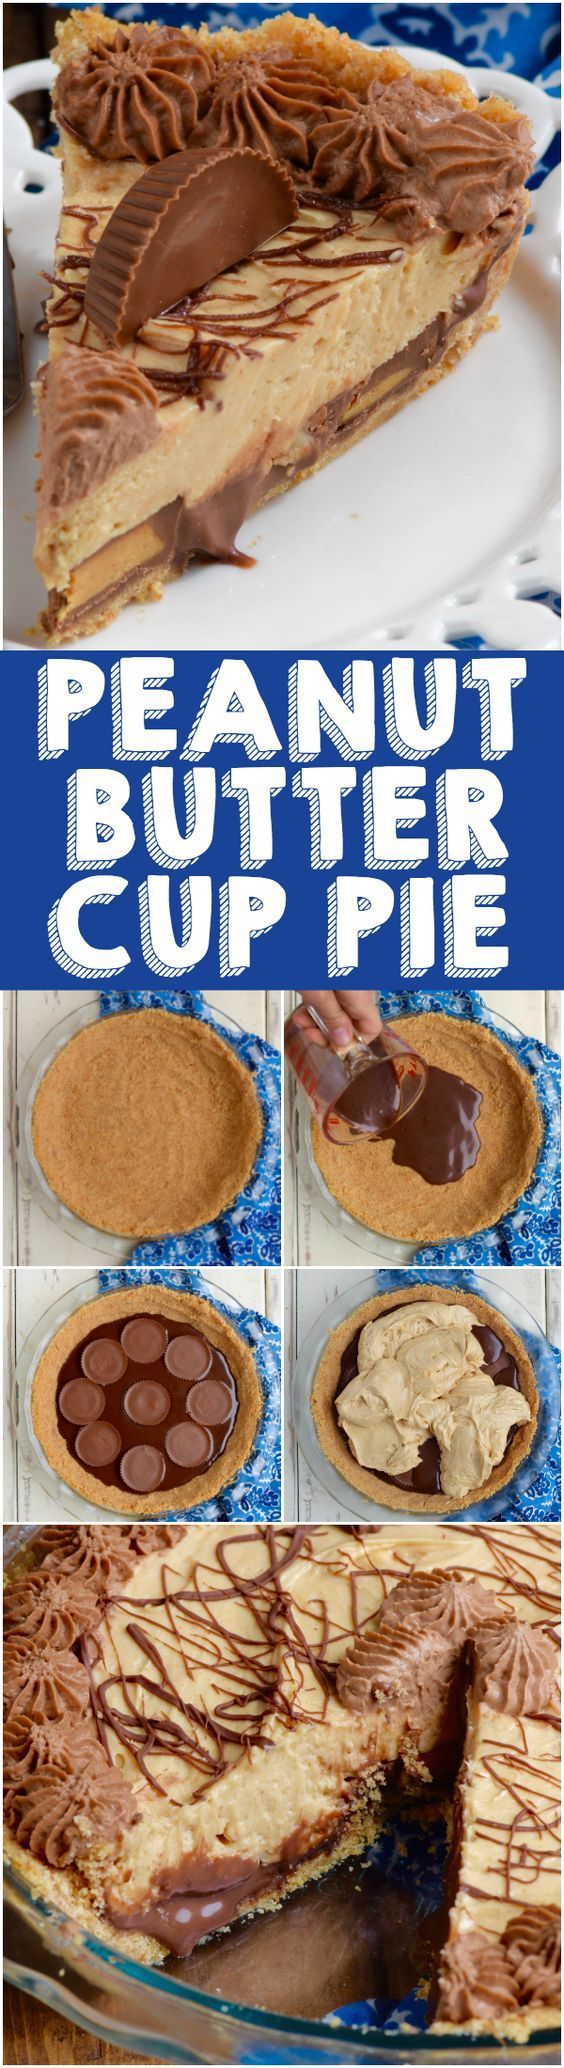 Peanut Butter Cup Pie is layer upon layer of absolute deliciousness!